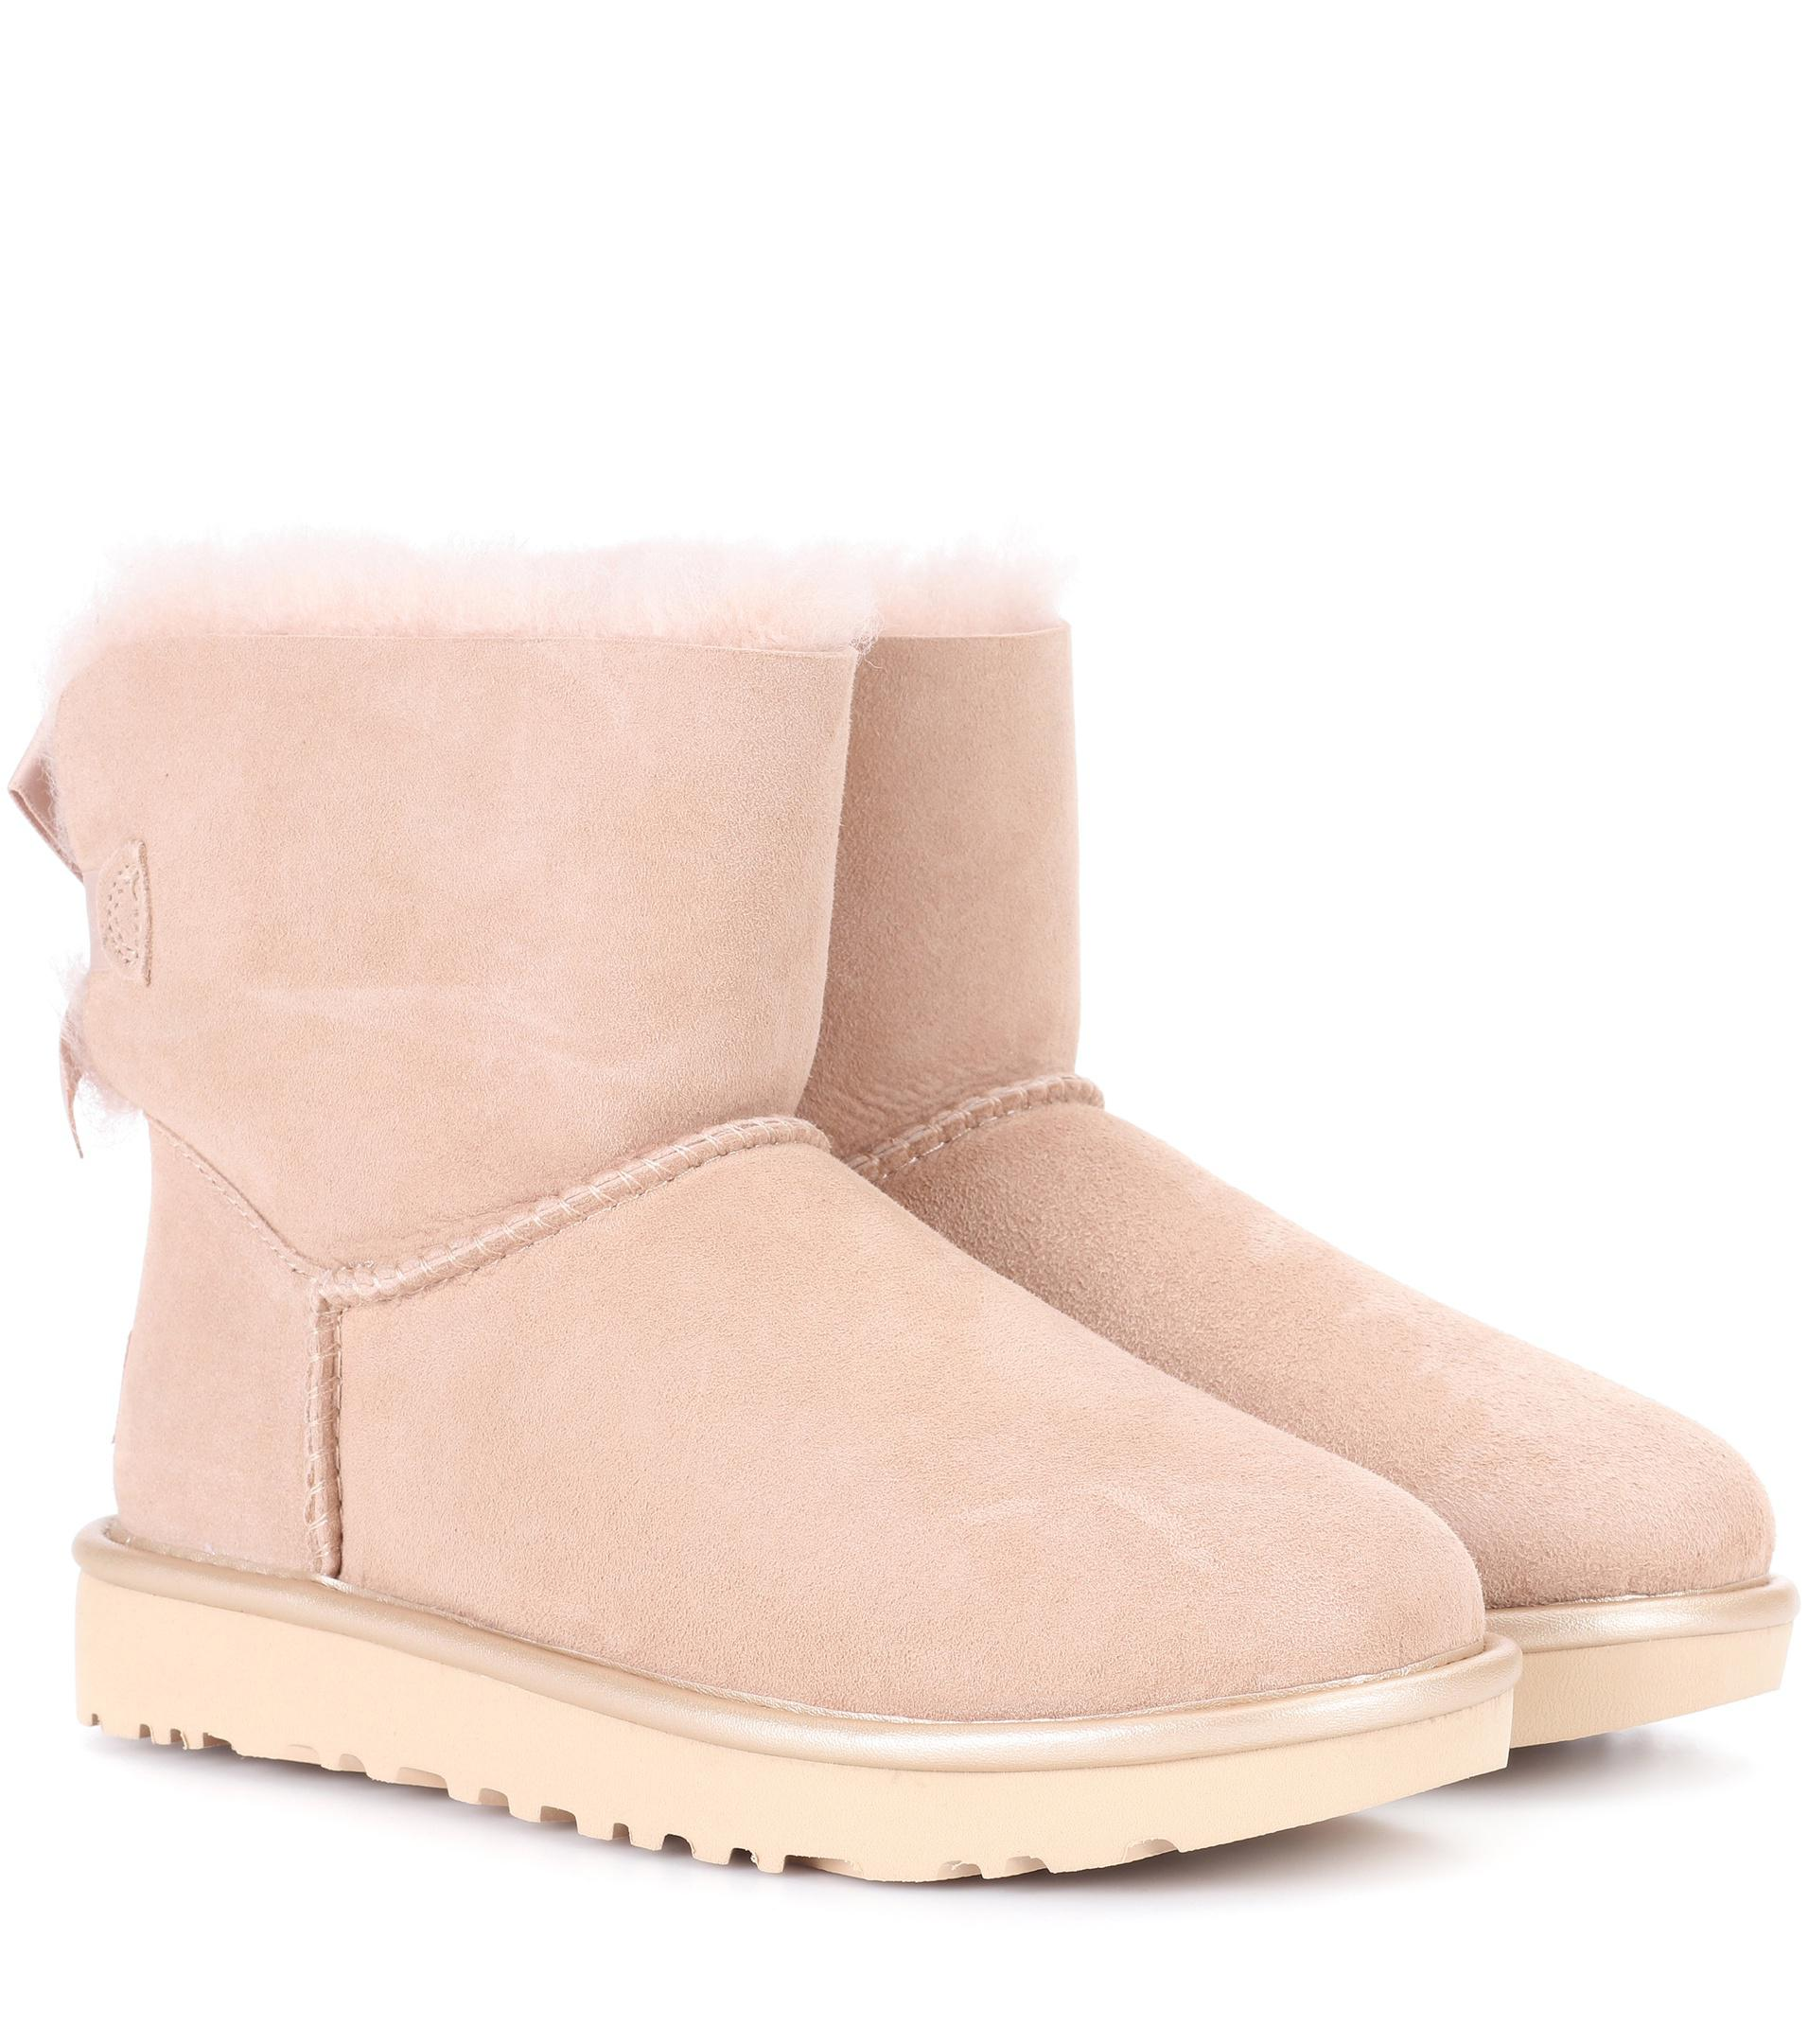 Mini Bailey Bow II suede ankle boots UGG Clearance Perfect TOrQUQ